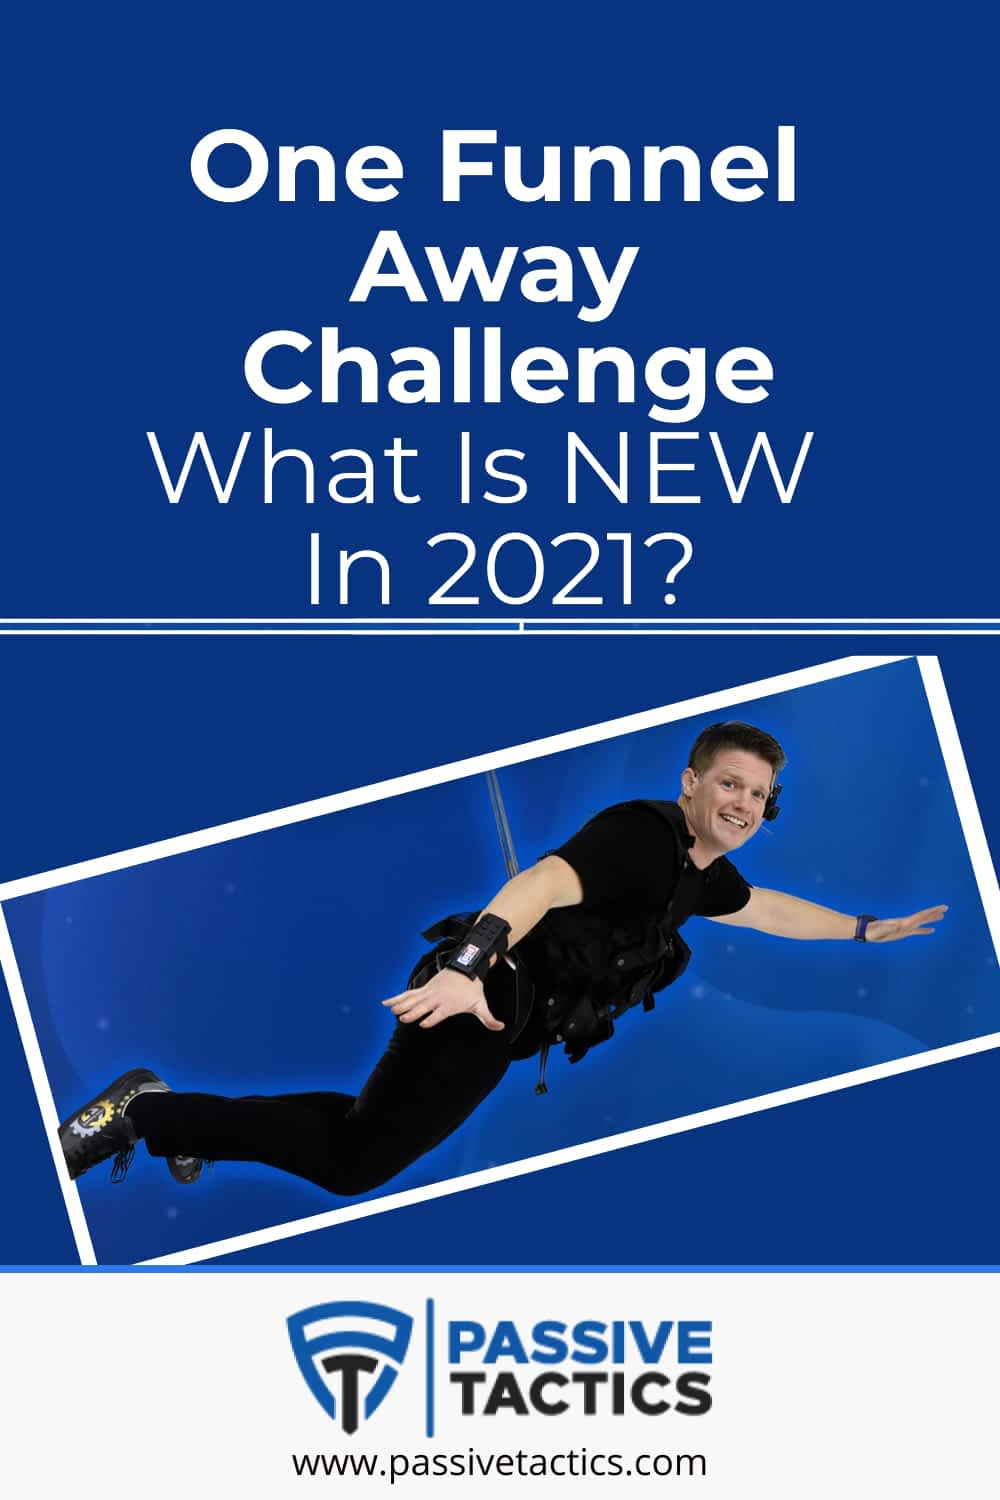 One Funnel Away Challenge Review: What Is NEW In 2021?